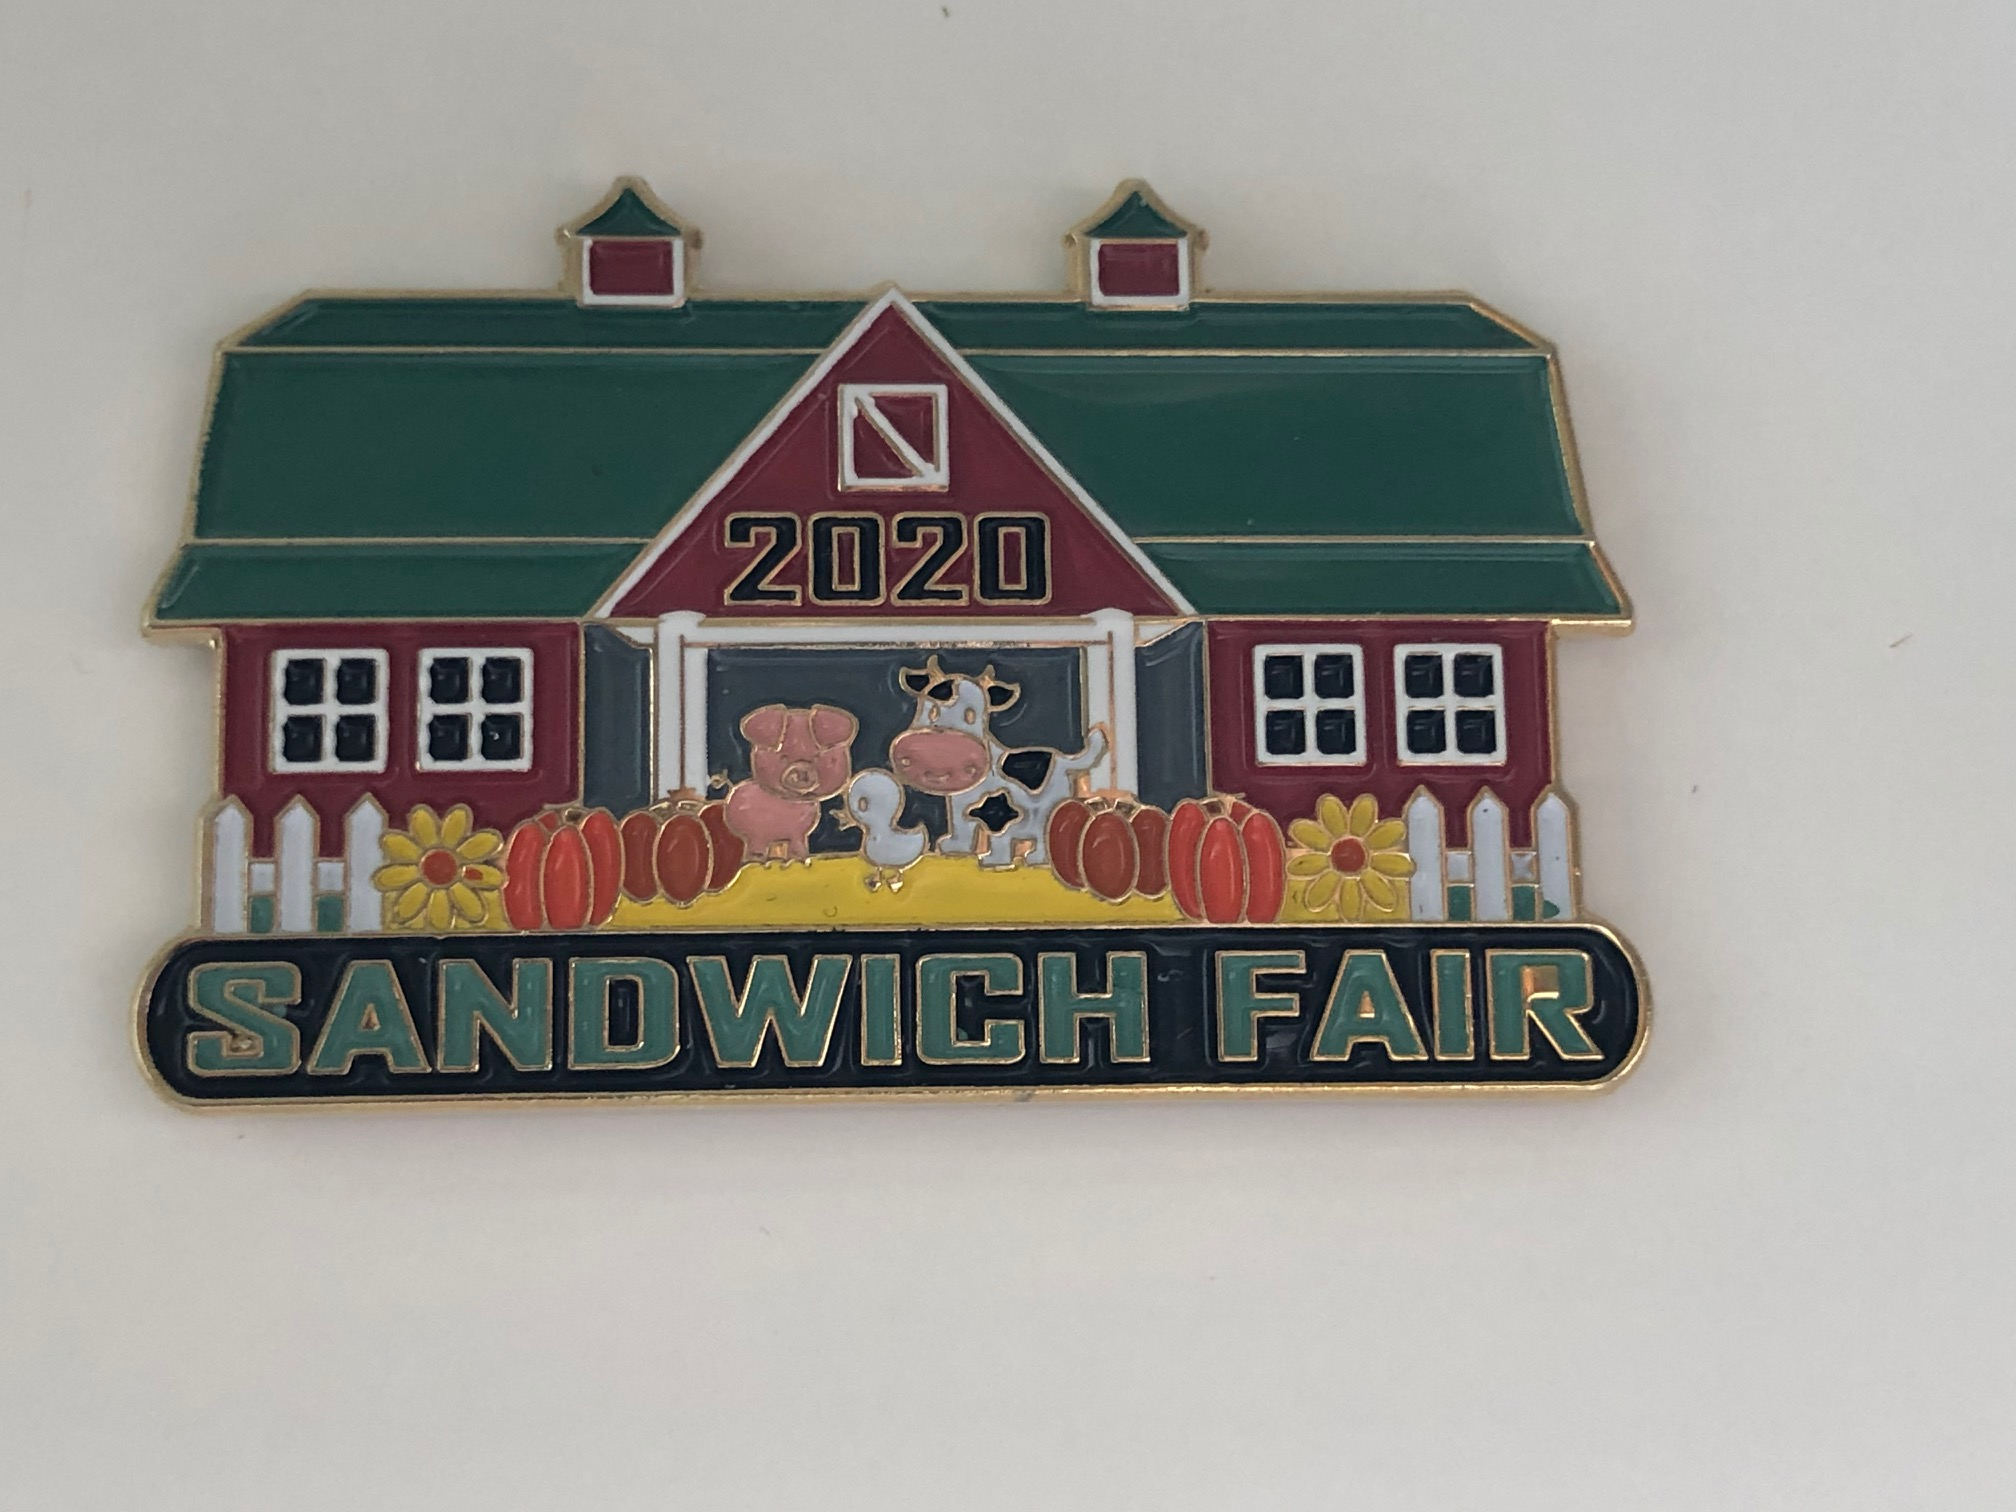 Sandwich Fair 2021 Calendar Fair Details/Schedule   Sandwich Fair